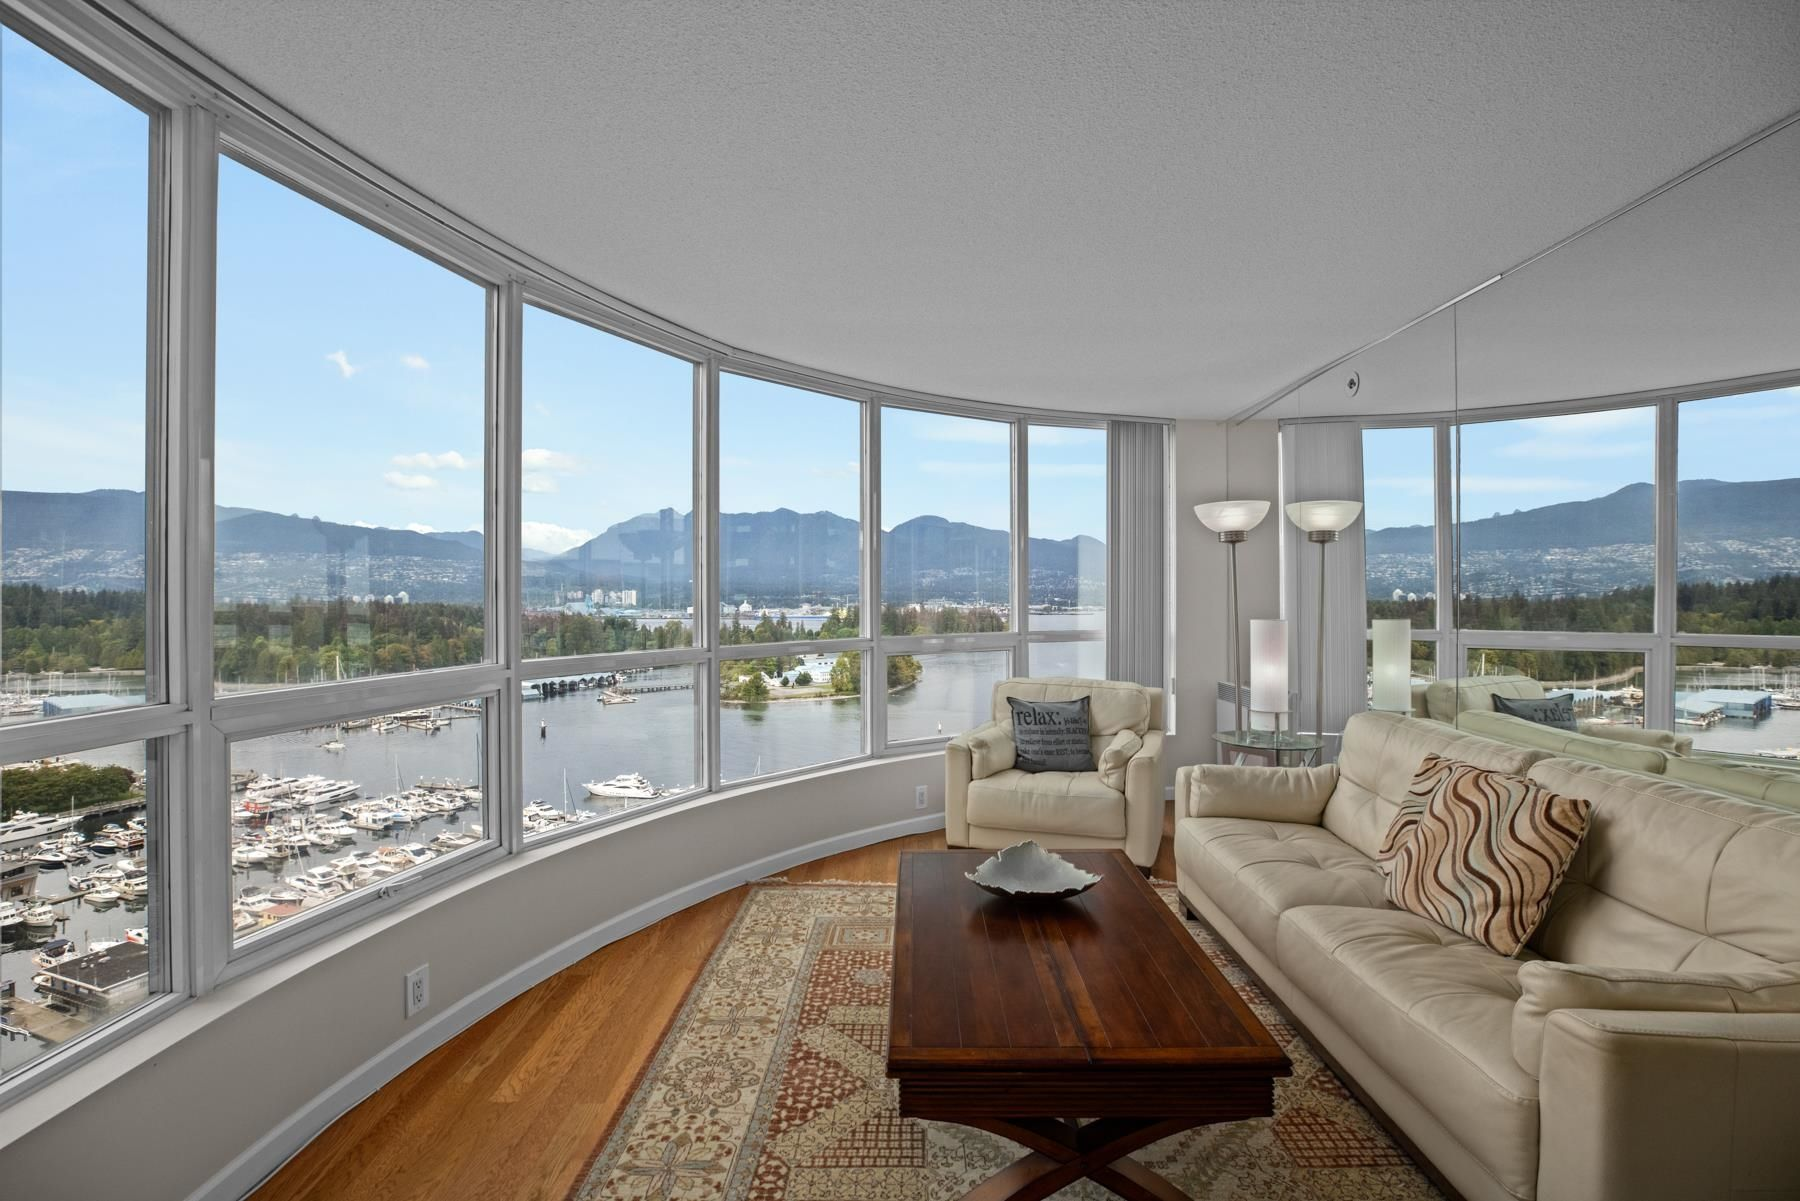 """Main Photo: 2201 555 JERVIS Street in Vancouver: Coal Harbour Condo for sale in """"HARBOURSIDE PARK II"""" (Vancouver West)  : MLS®# R2615273"""